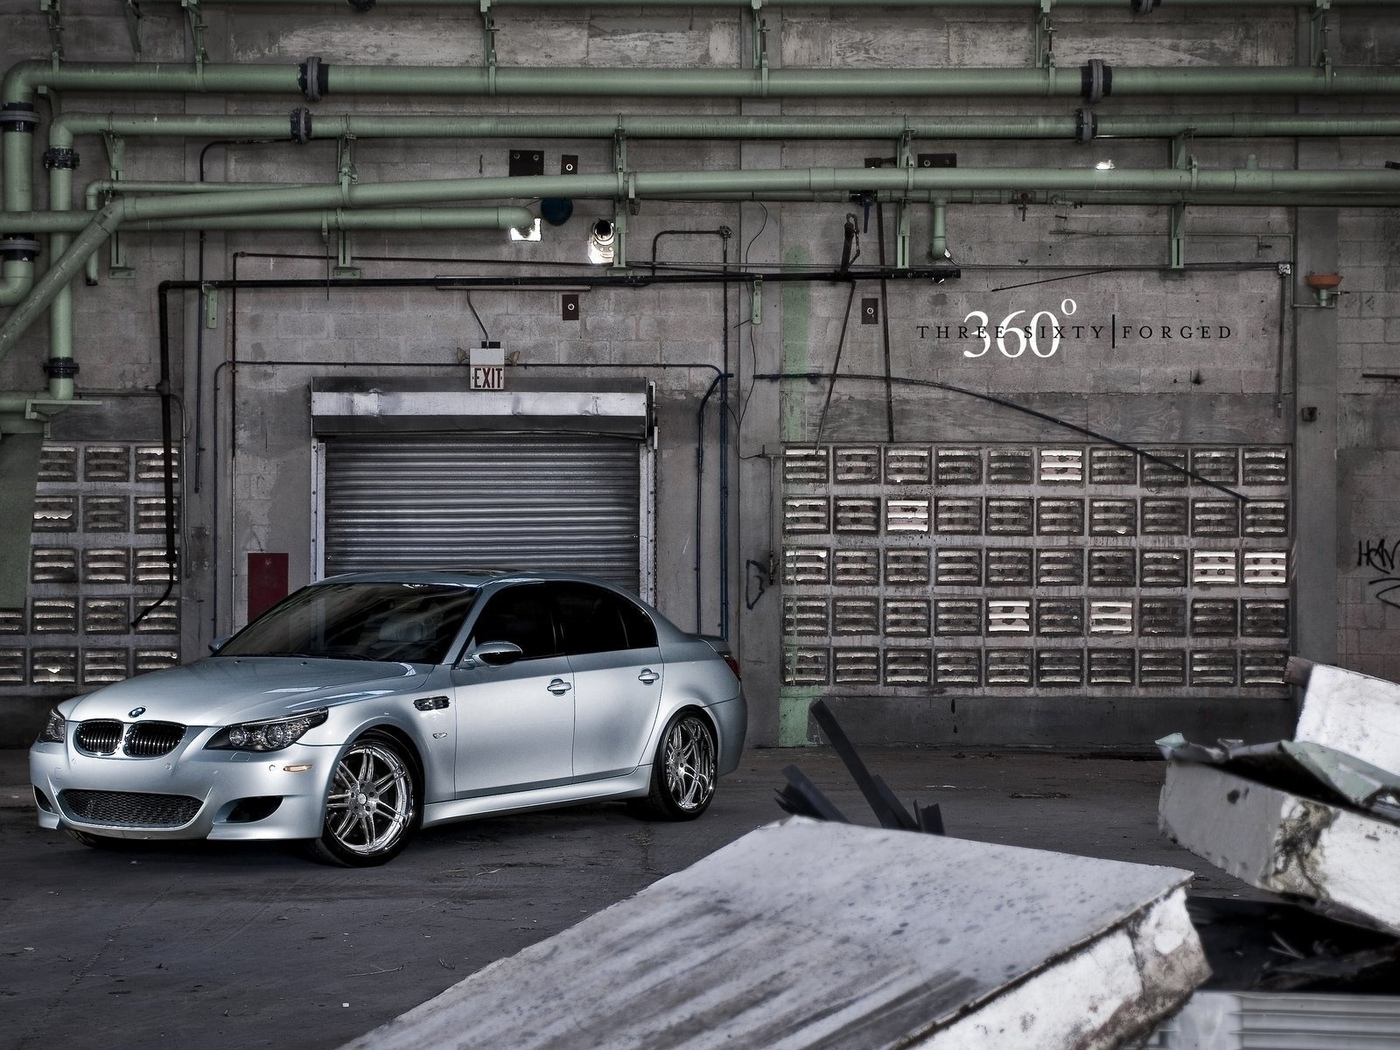 360forged, m5, bmw